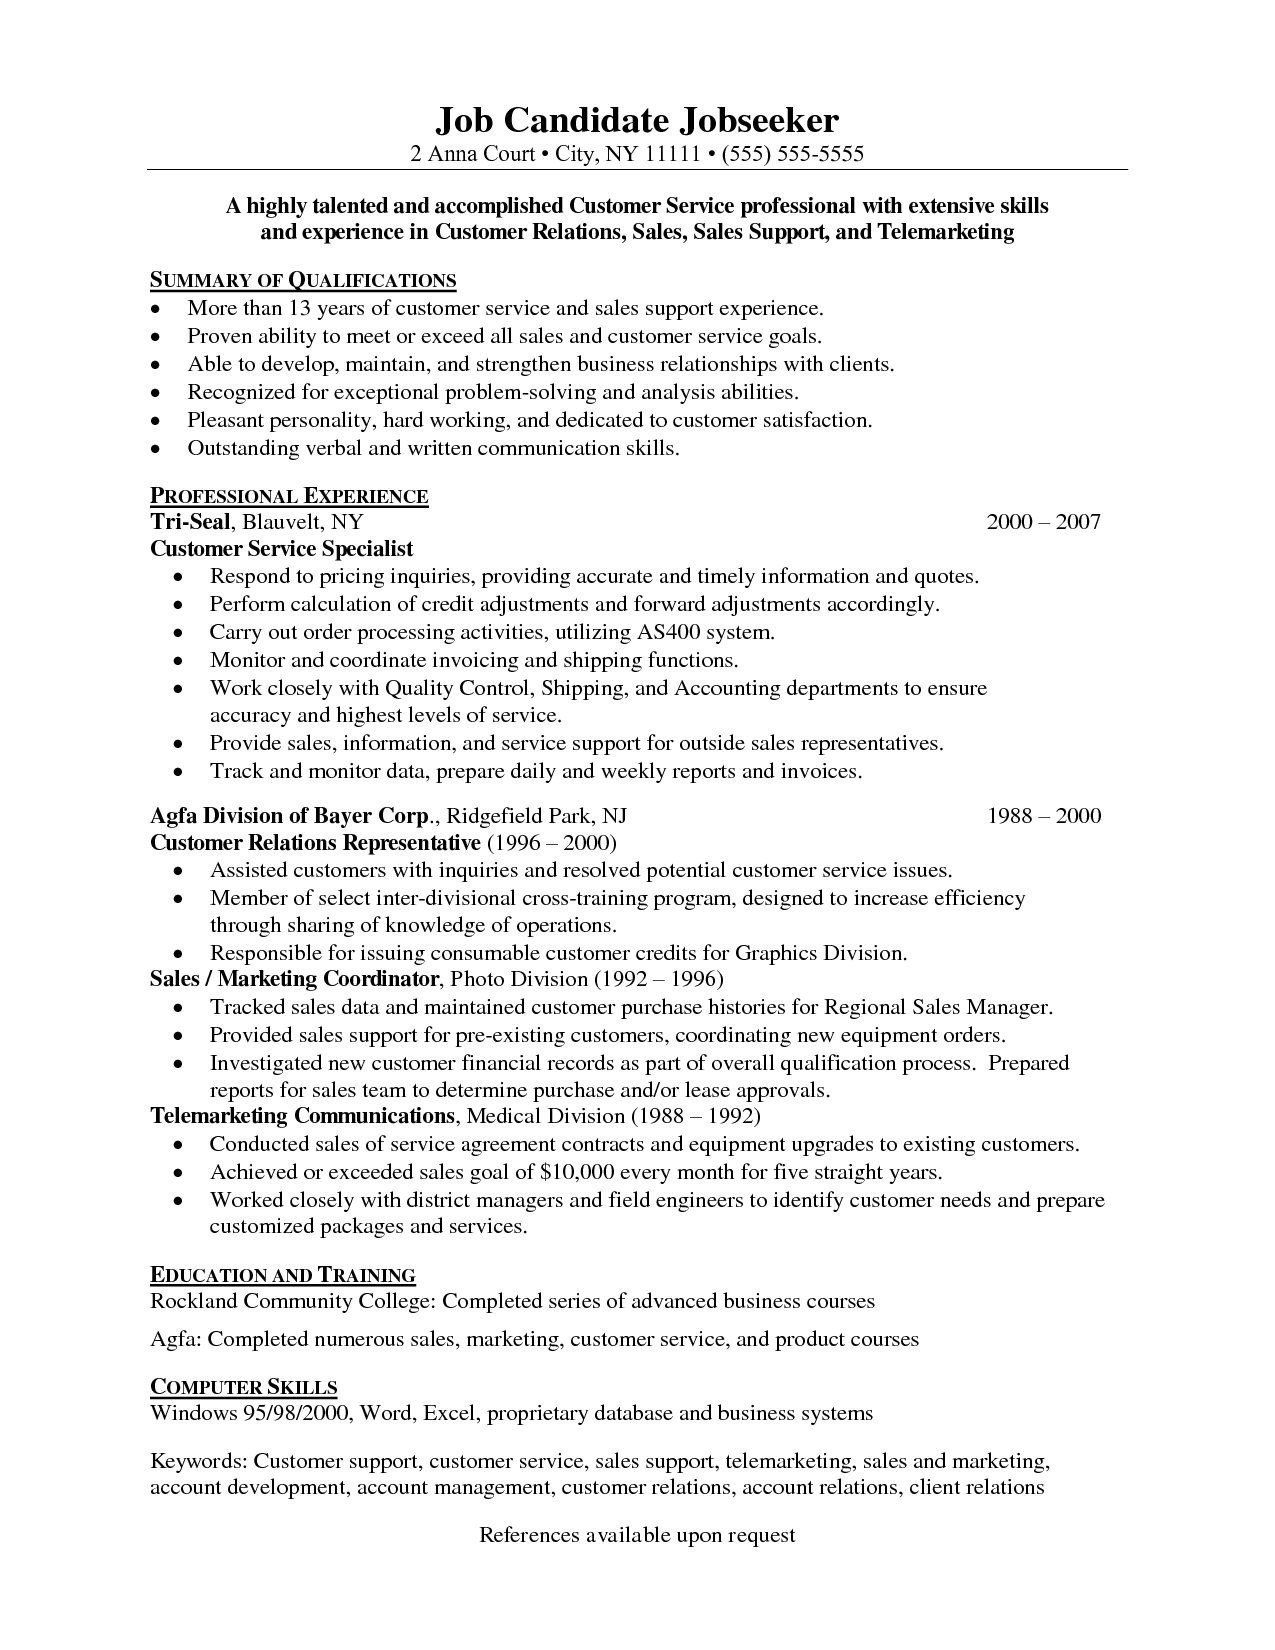 resume objectives for customer service best objective examples skills keywords call Resume Keywords For Call Center Resume